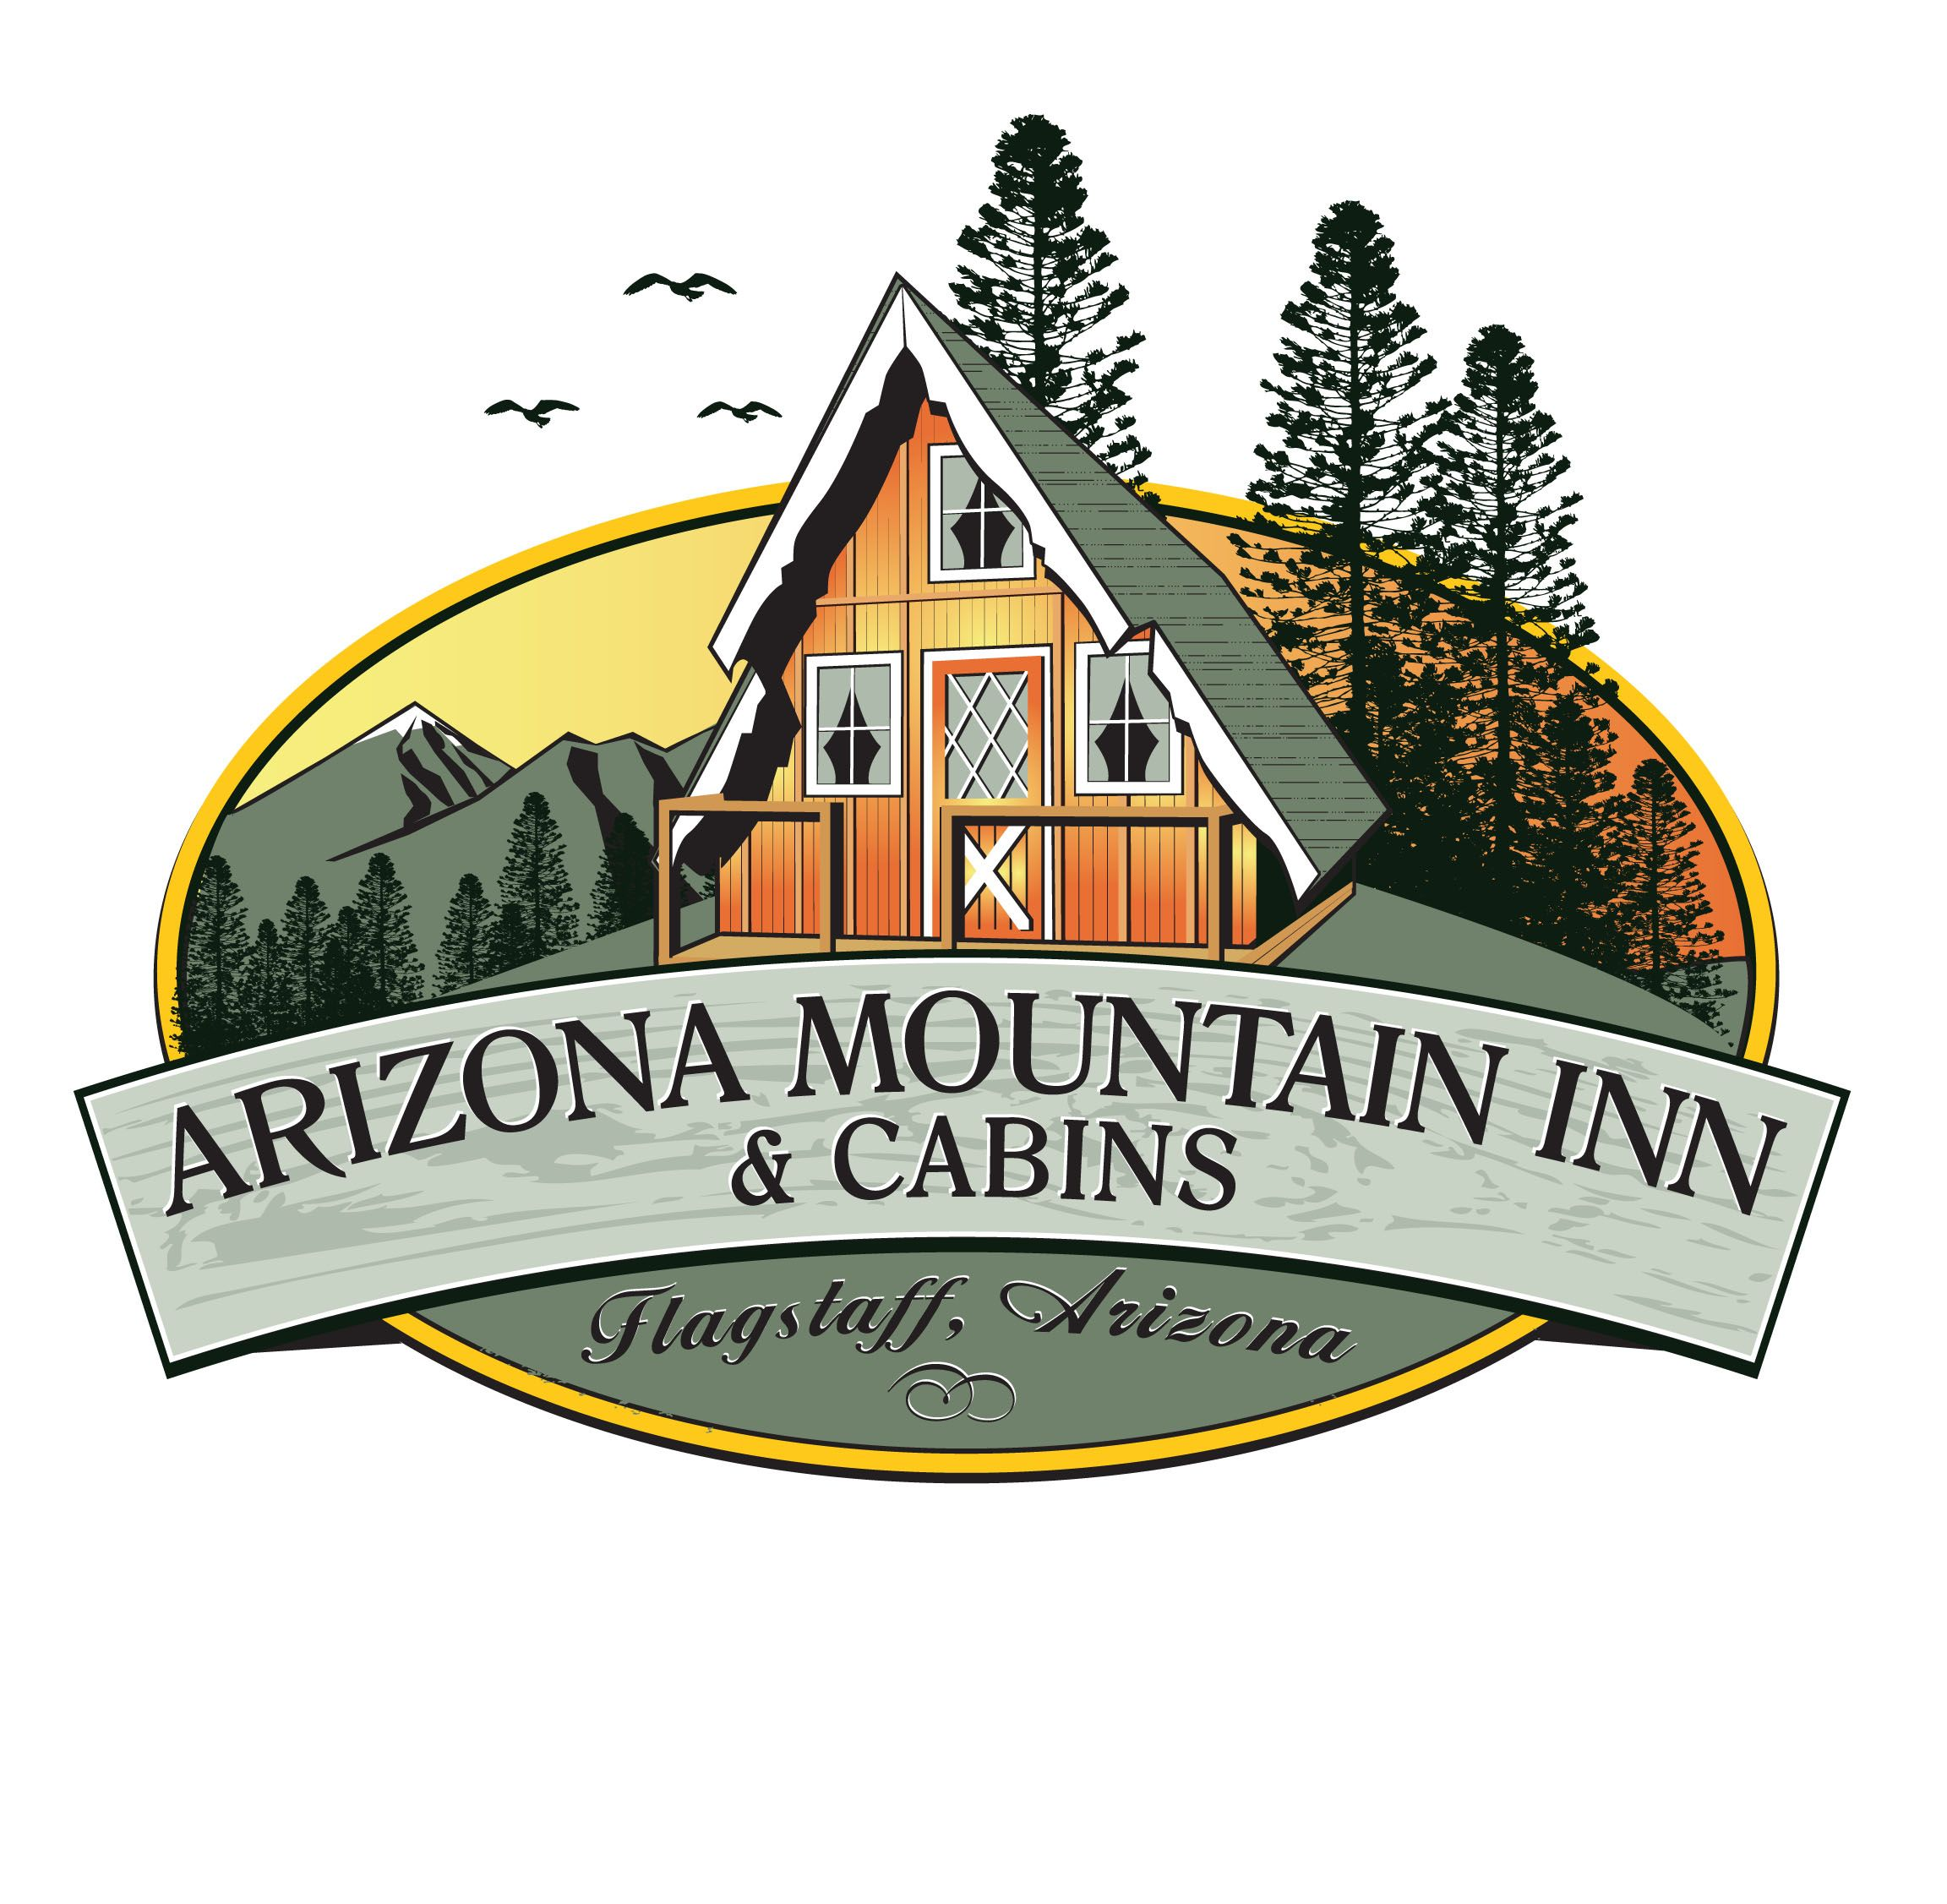 We Want You To Stay Out Arizona Mountain Inn And Cabins Located In